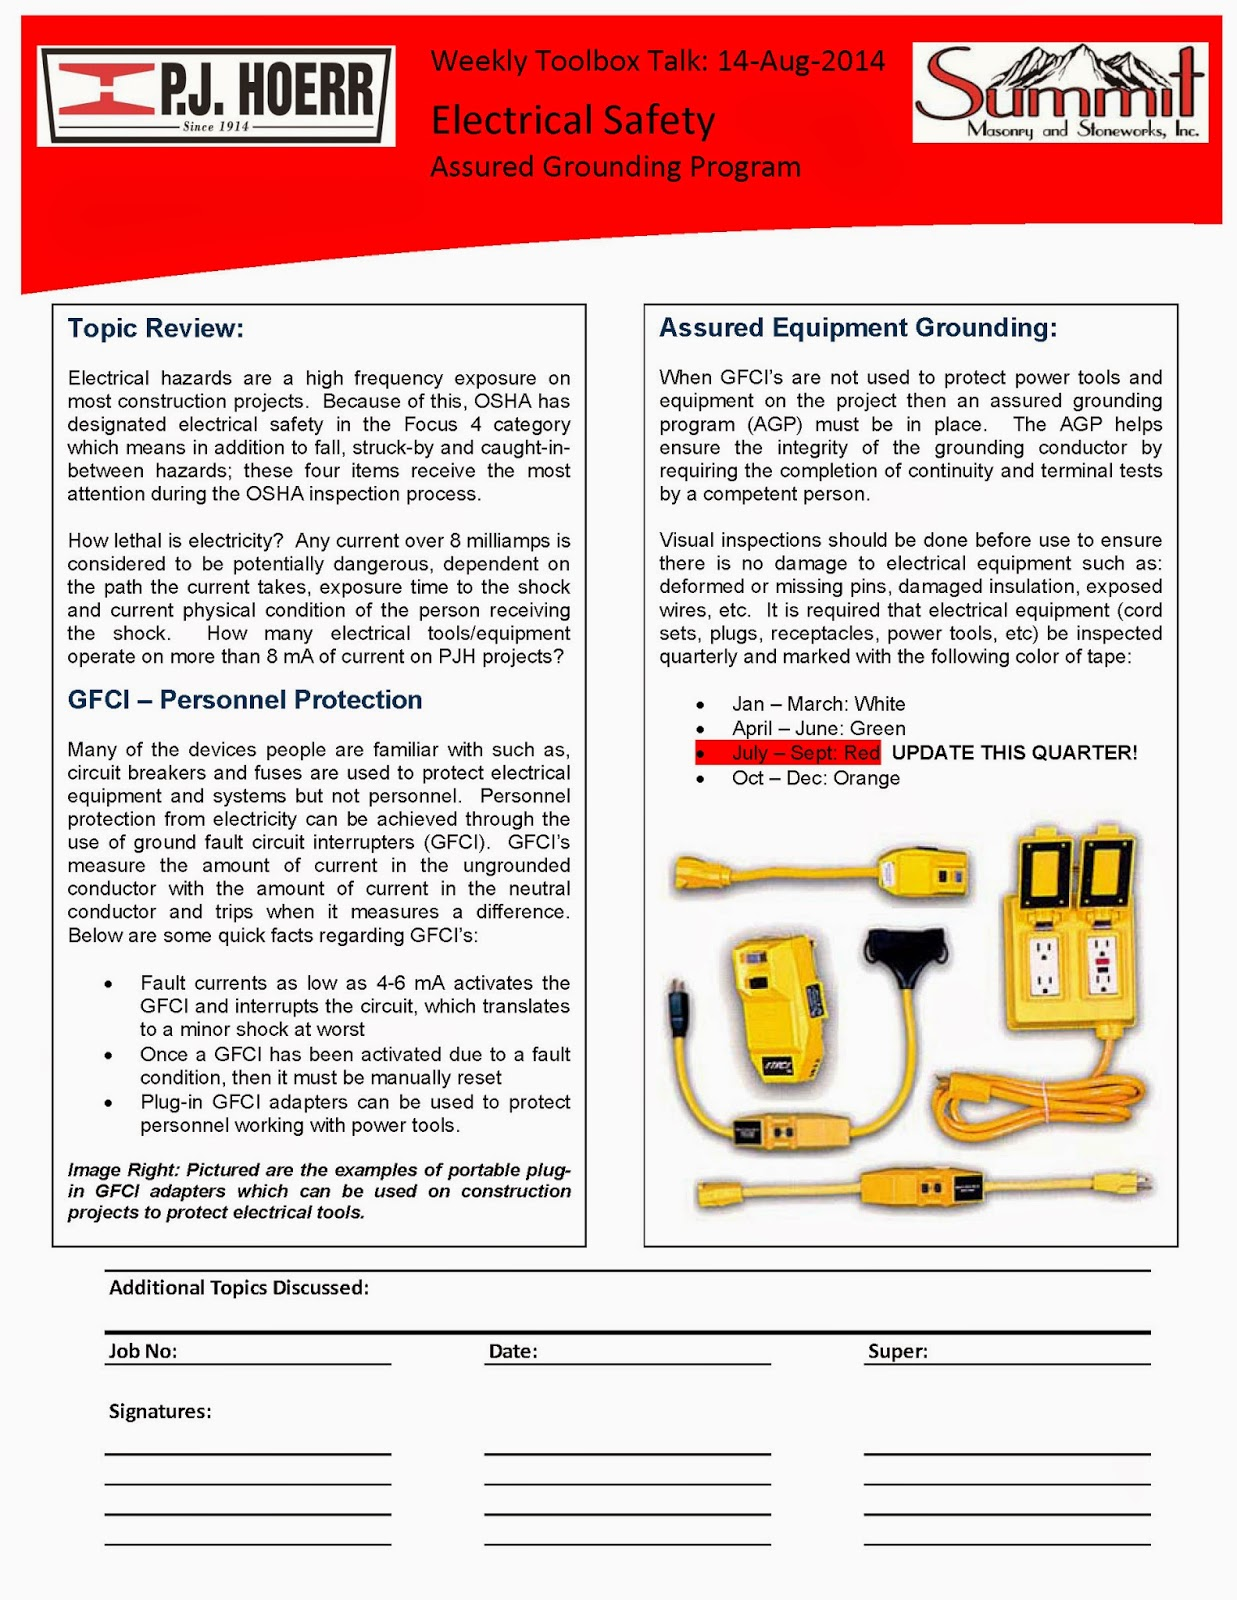 electrical safety toolbox talk pdf